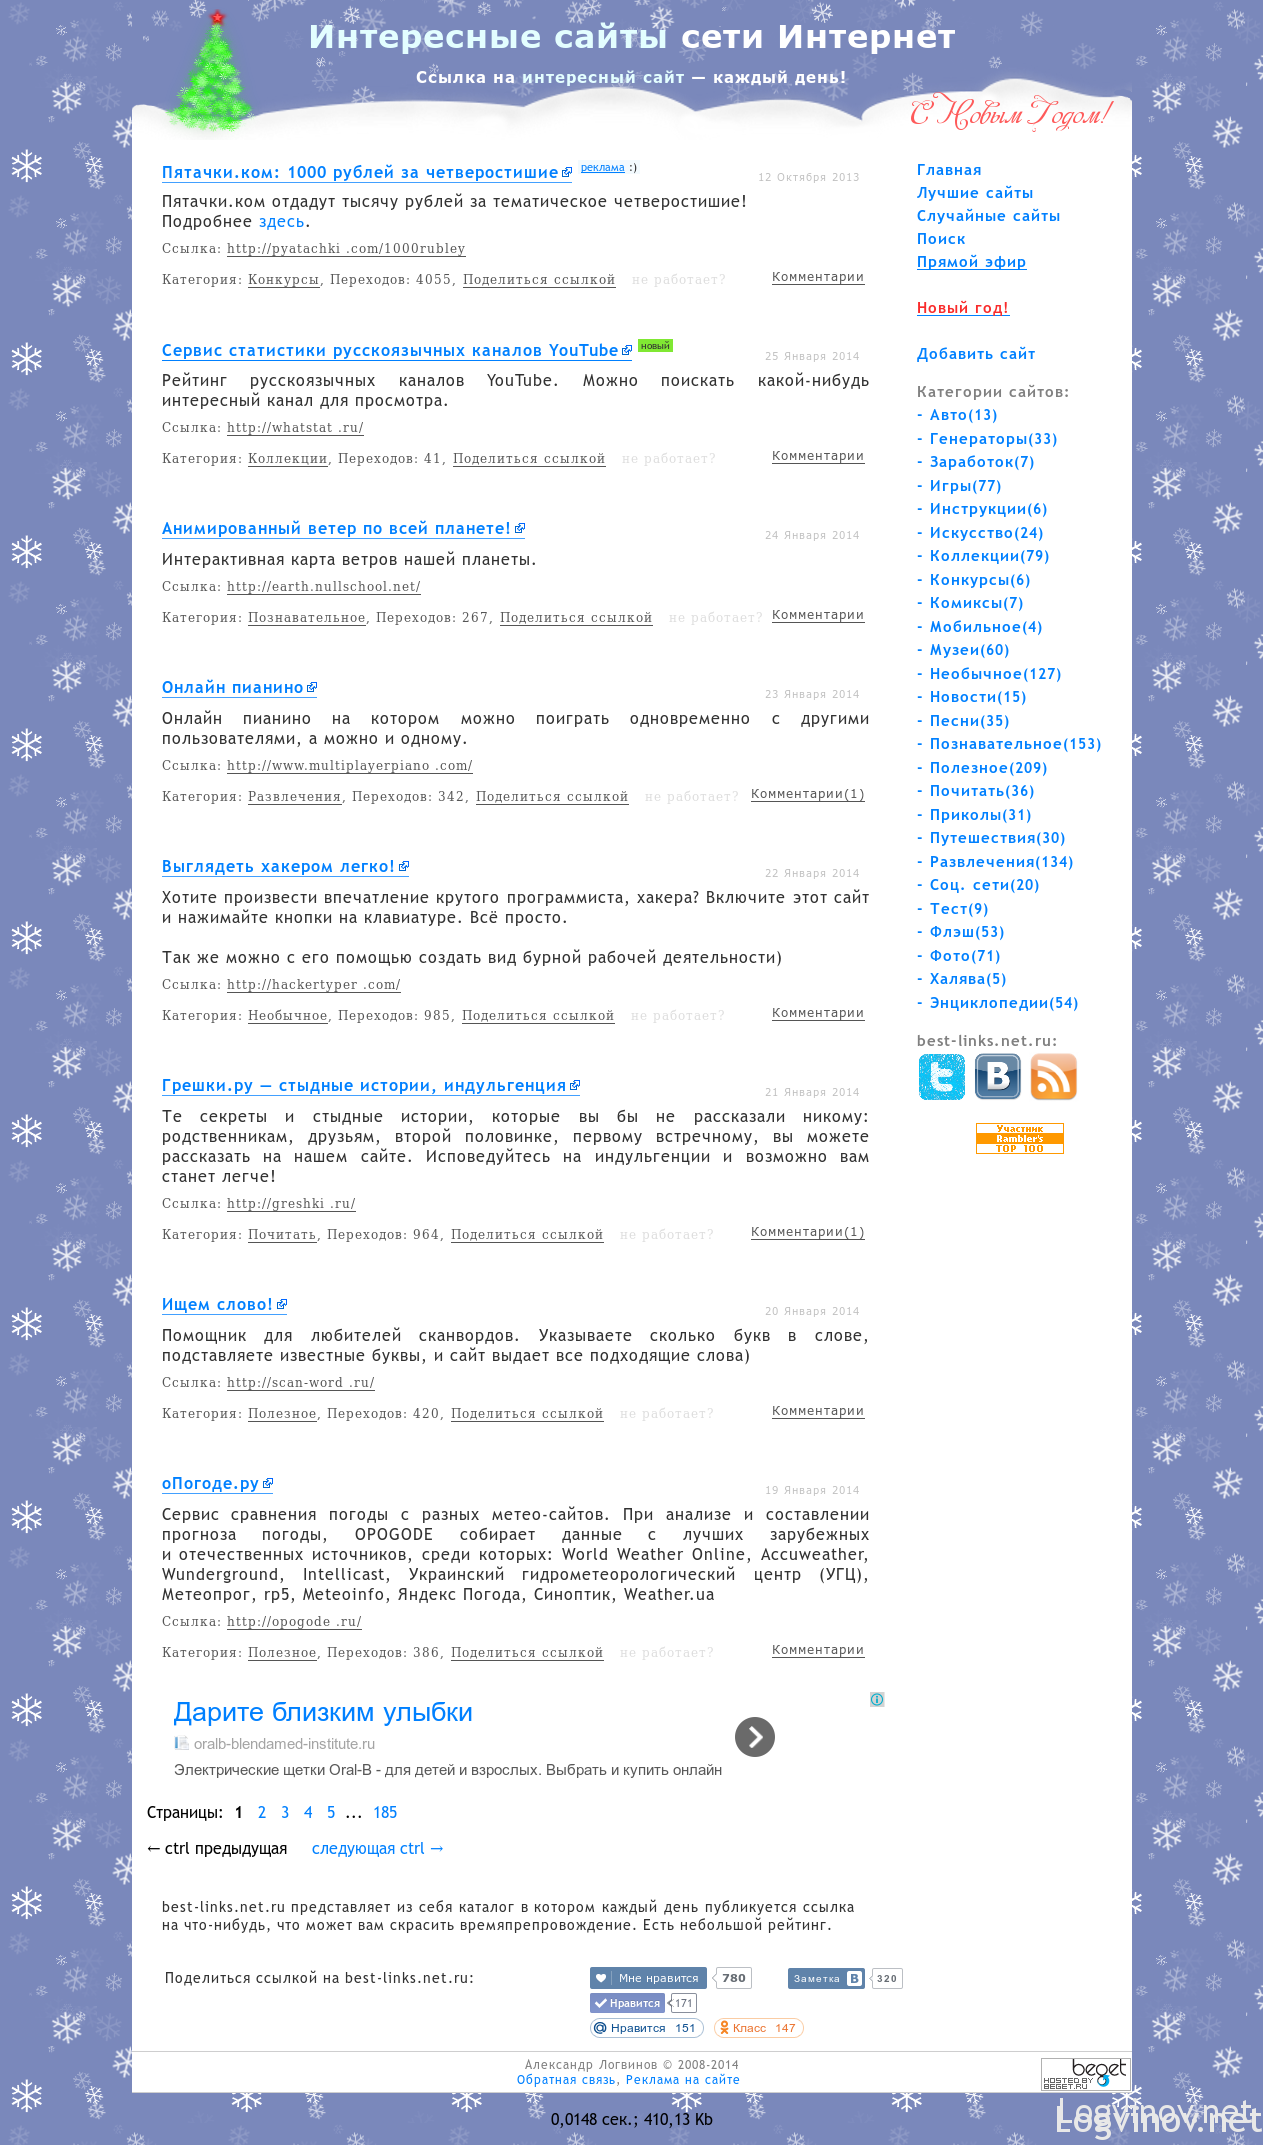 best-links.net.ru_2014-01-25